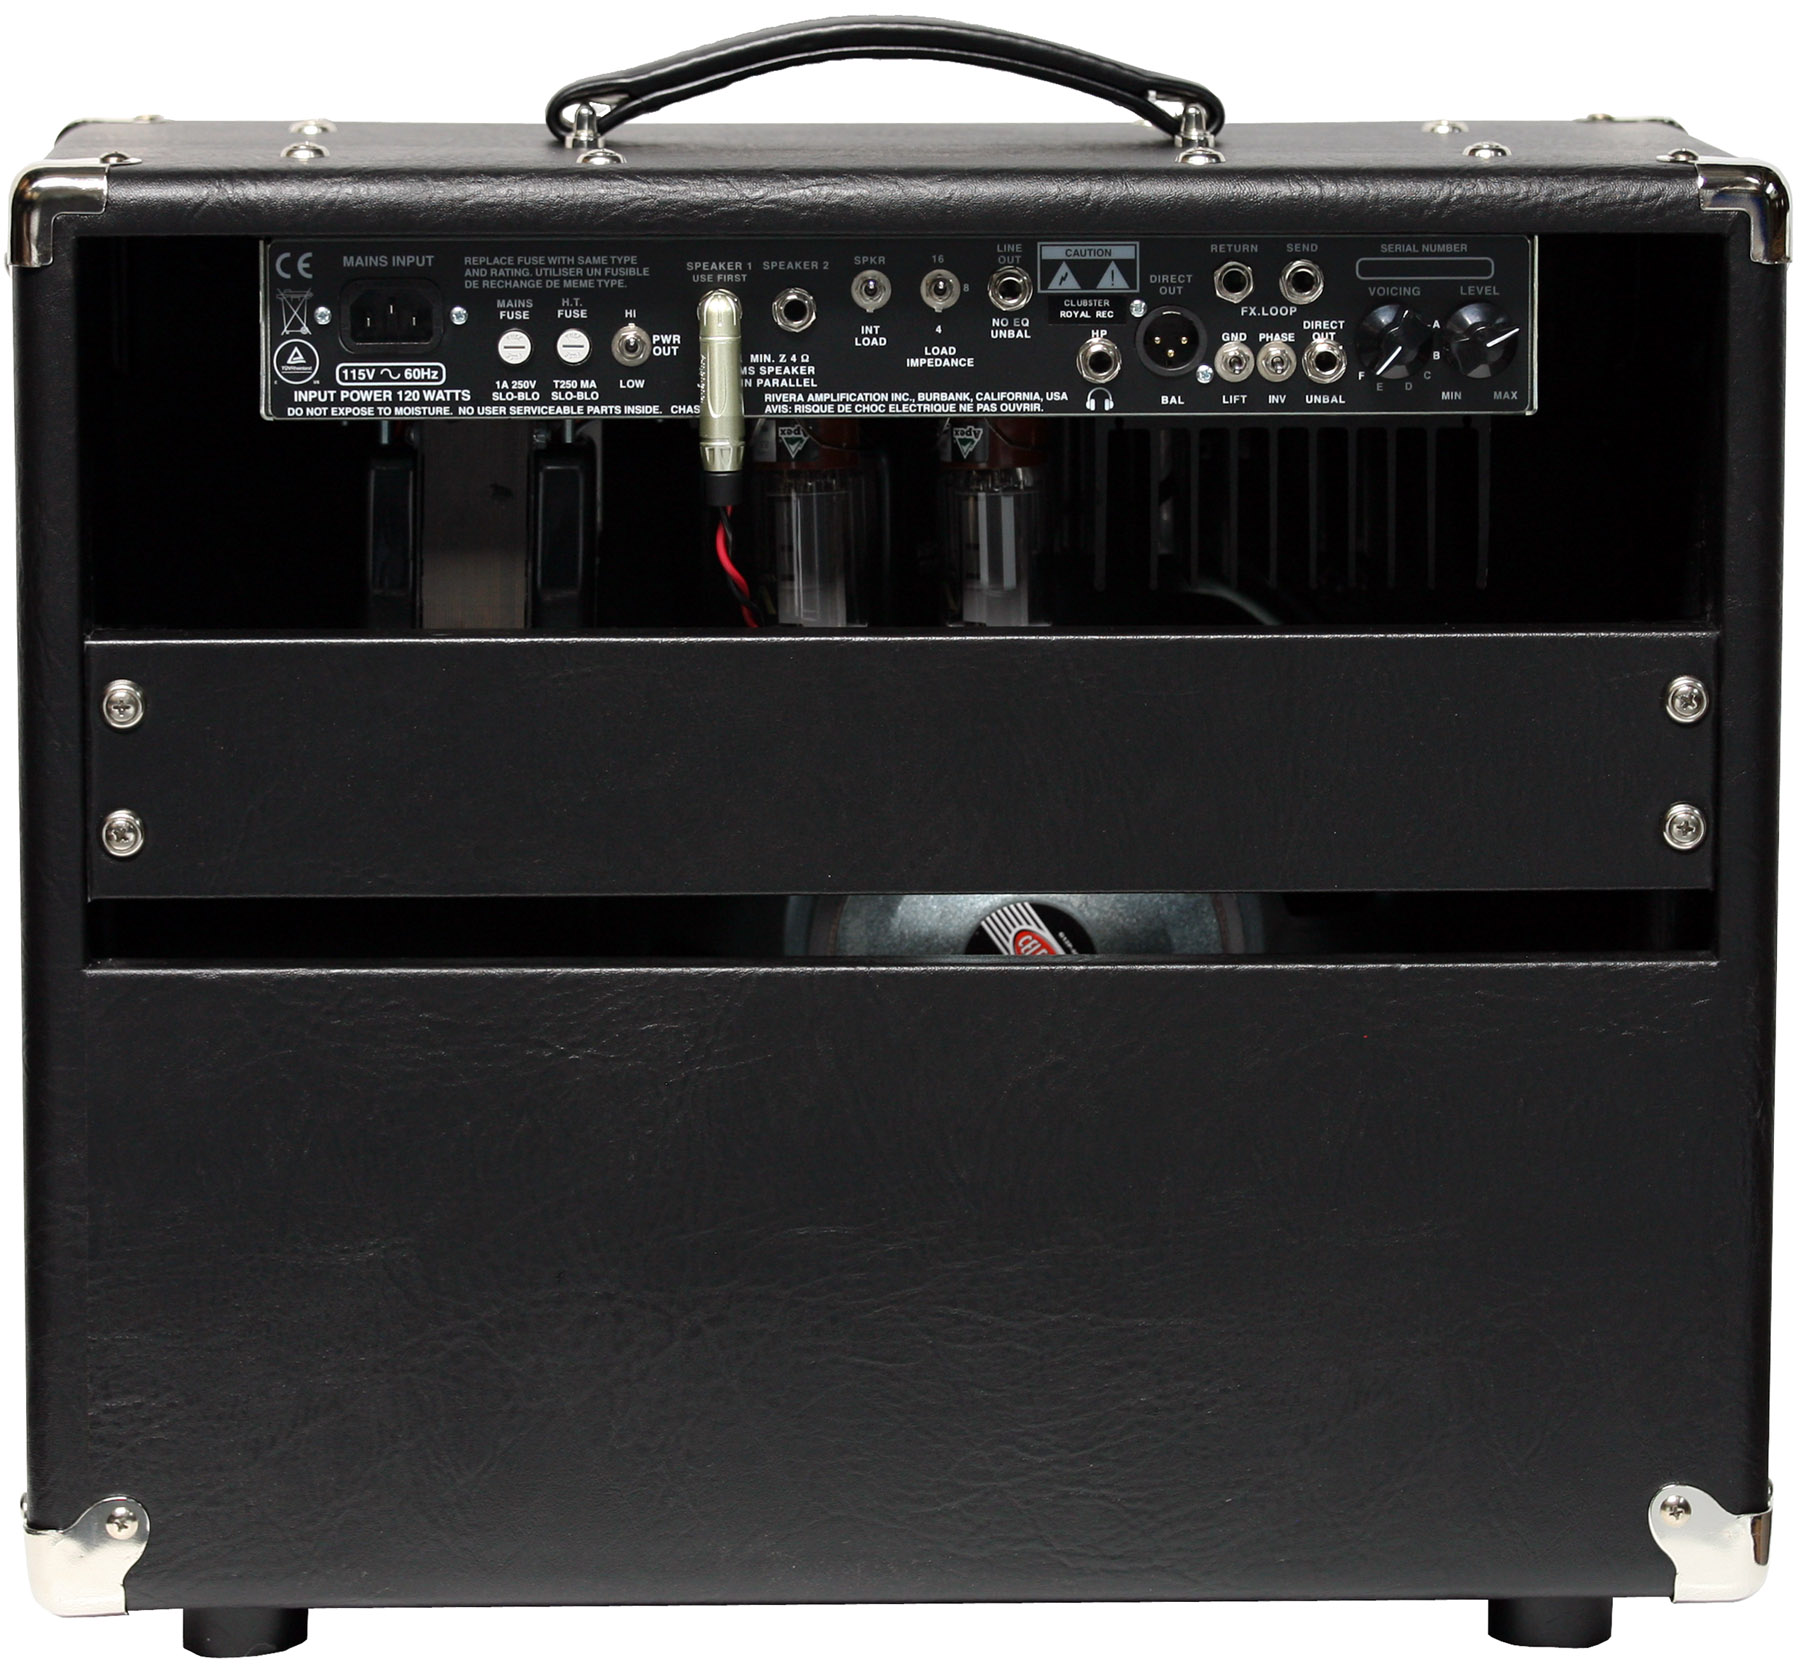 Clubster Royale Recording 112 Rivera Amplification 12 Channel Original Meet Riveras More Affordable And Flexible Dual Now Get Killer Real All Tube Tone Direct Featuring The Mini Rockrec